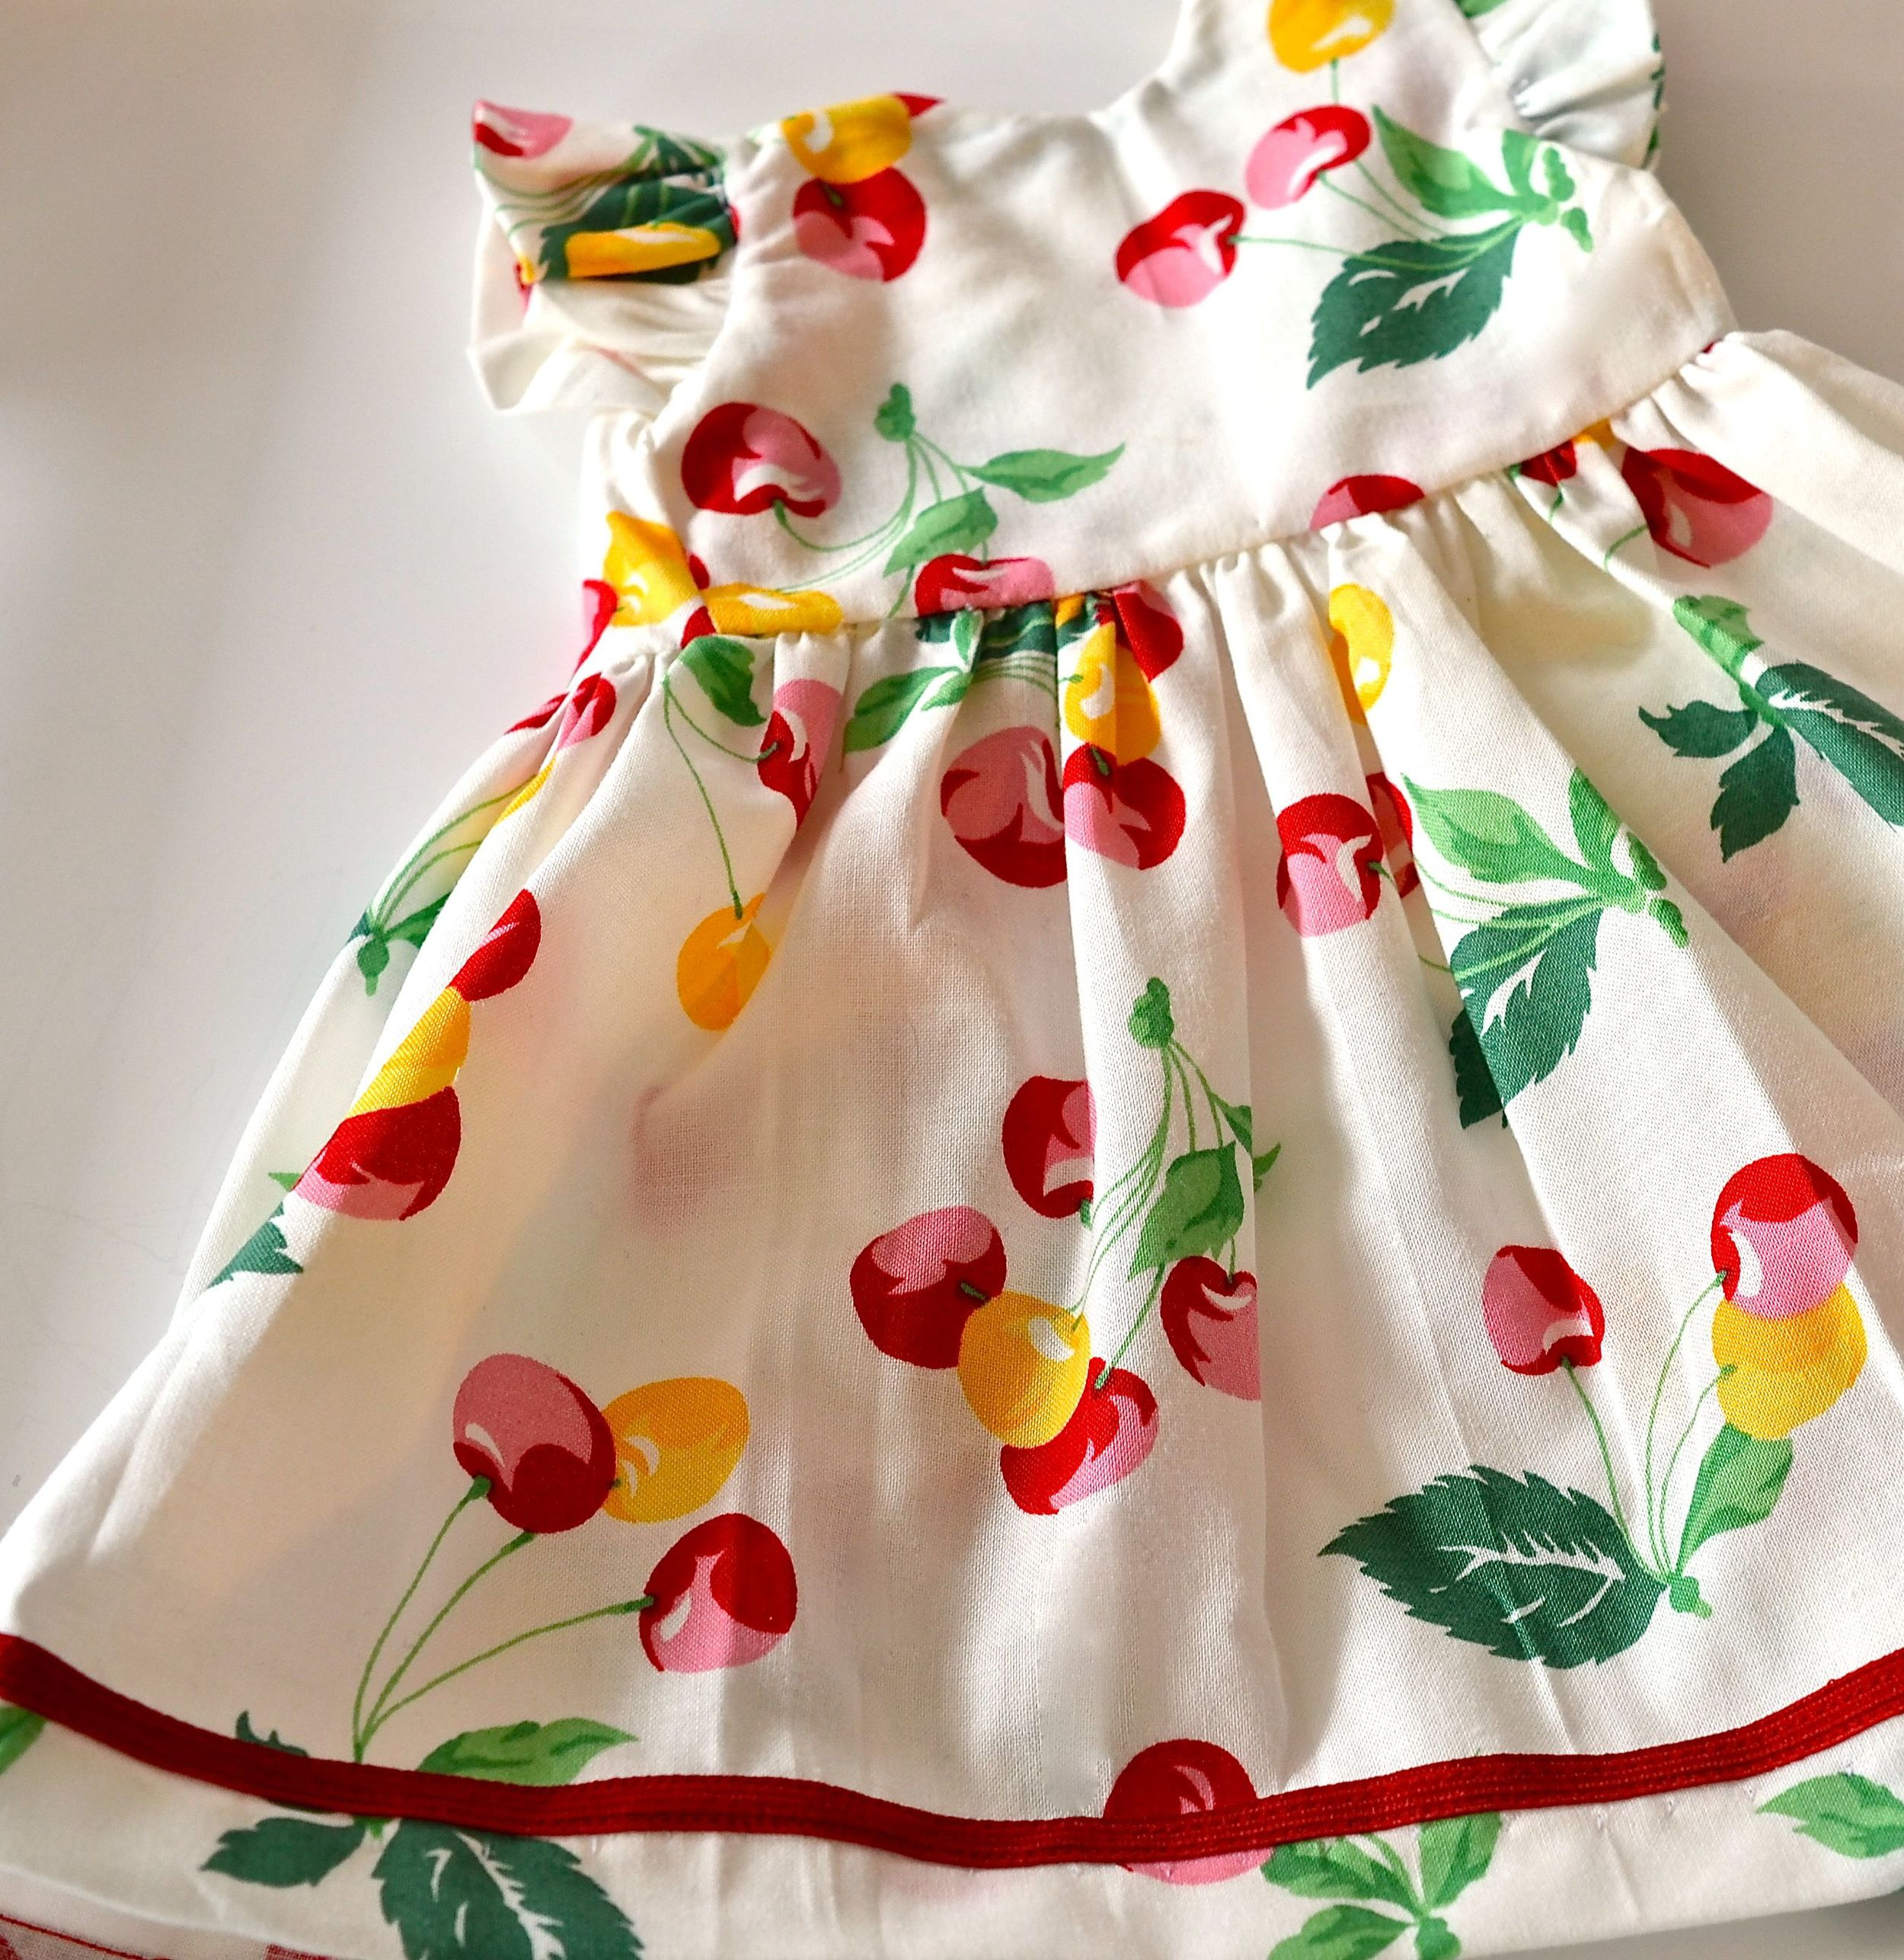 Cherry Fabric Dress1.jpg